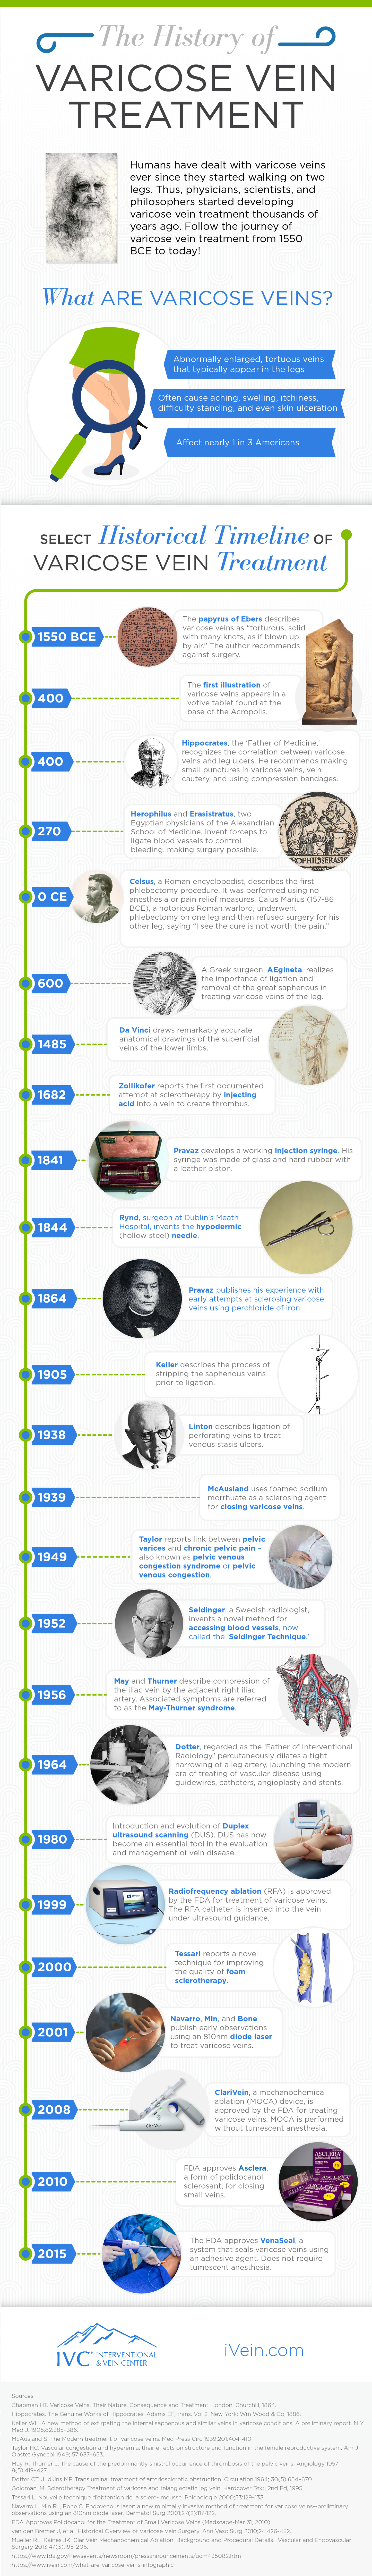 history of varicose veins infographic